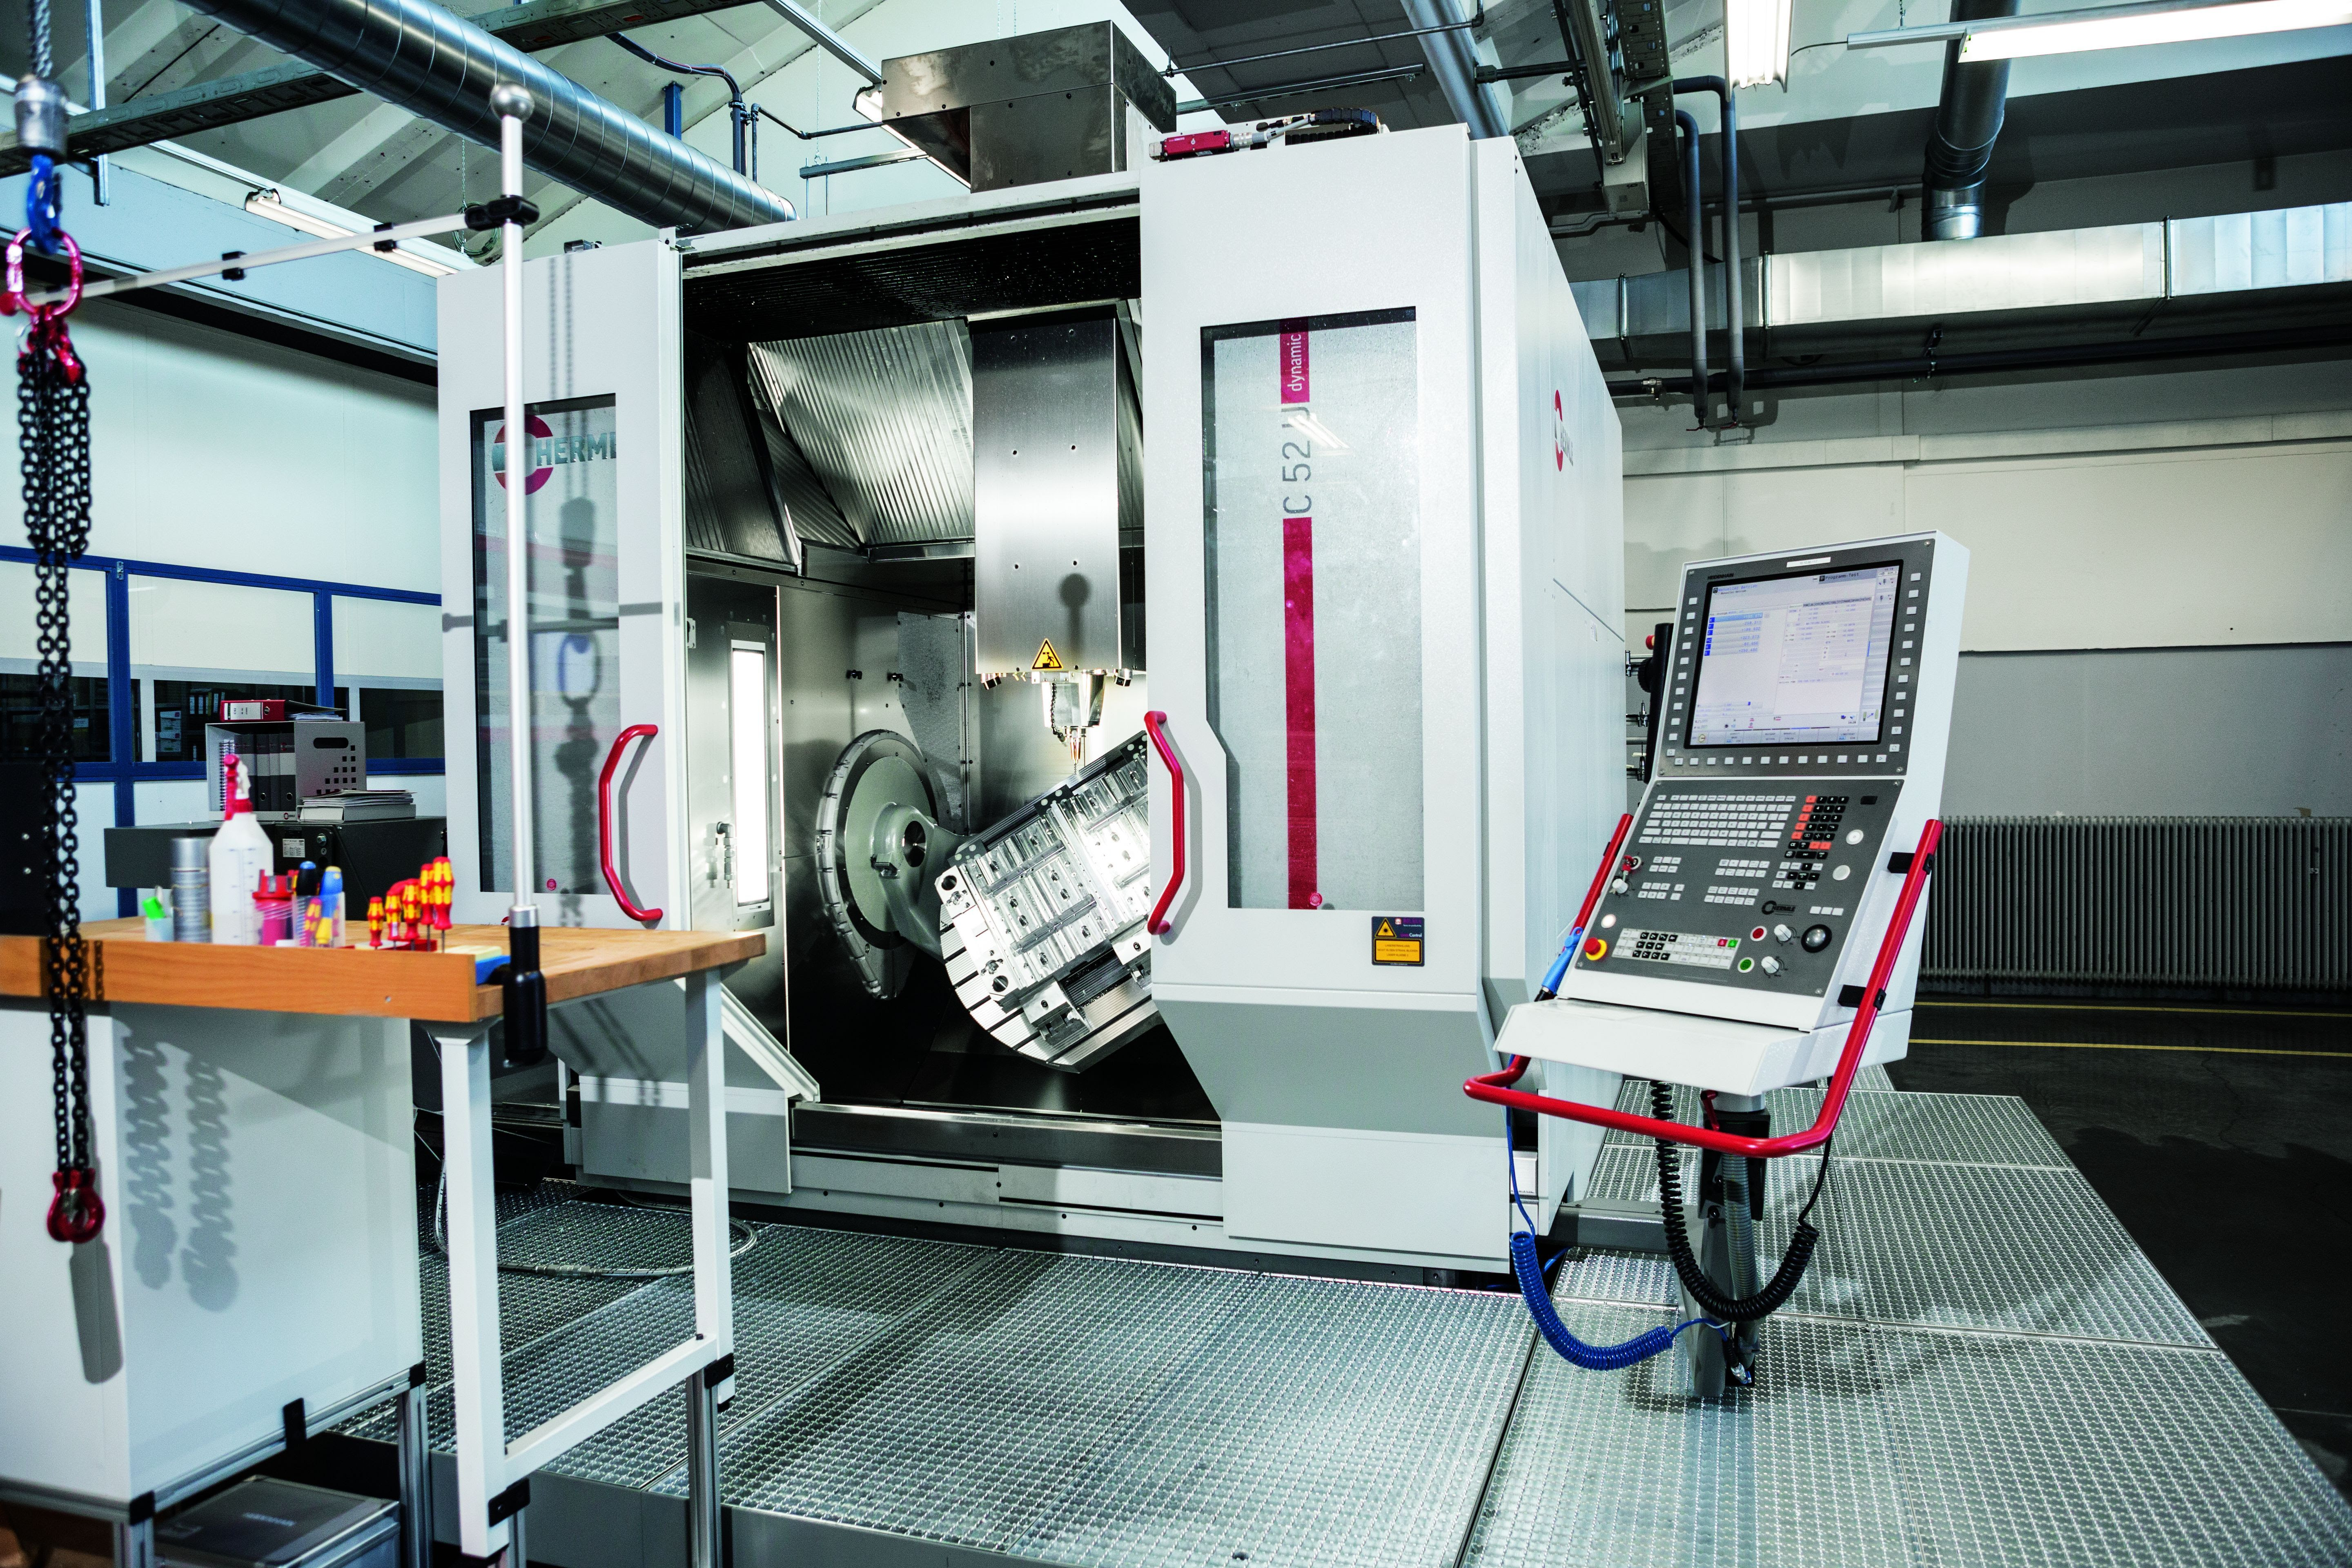 High-tech tool making with 5-axis milling expertise from